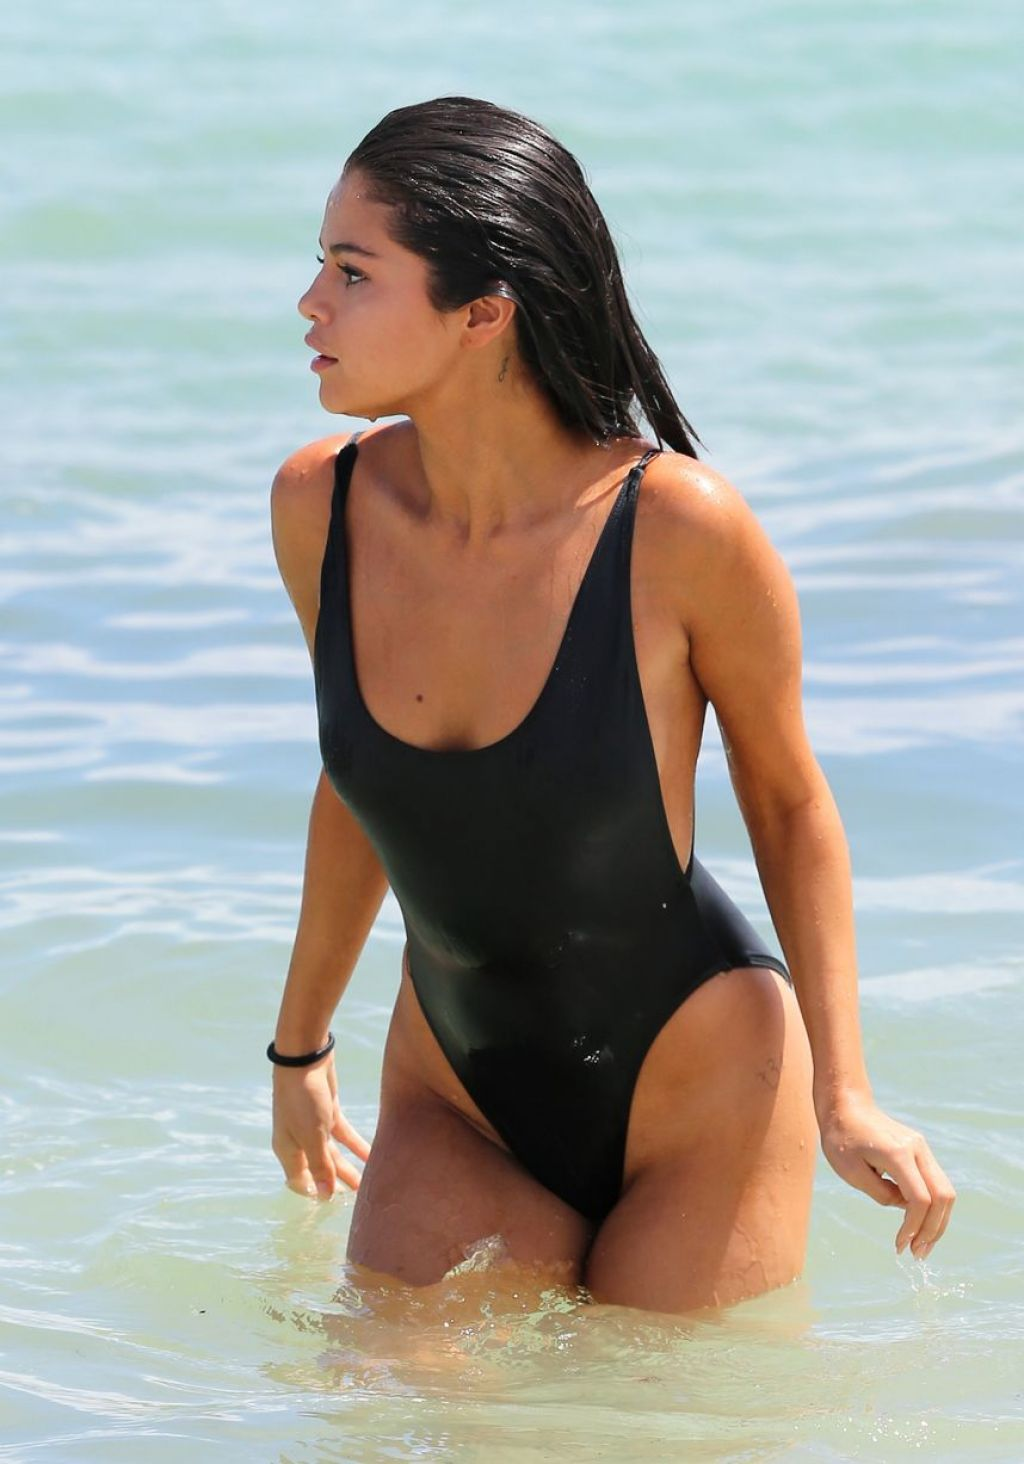 Selena Gomez In A One Piece On A Beach In Miami September